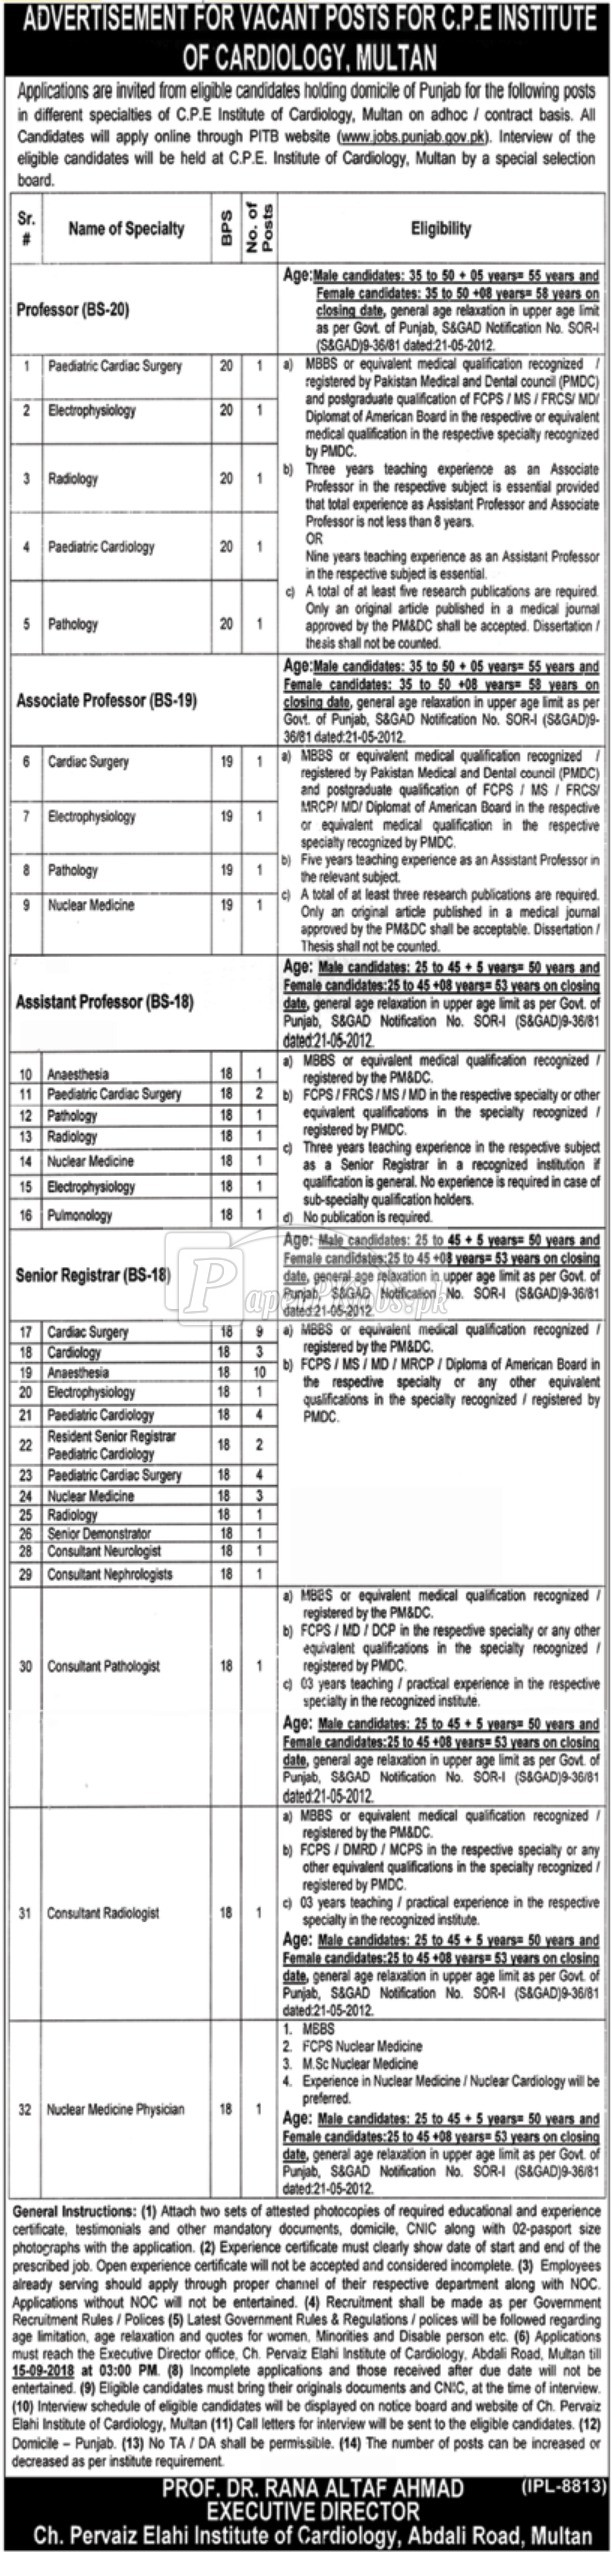 CPE Institute of Cardiology Multan Jobs 2018